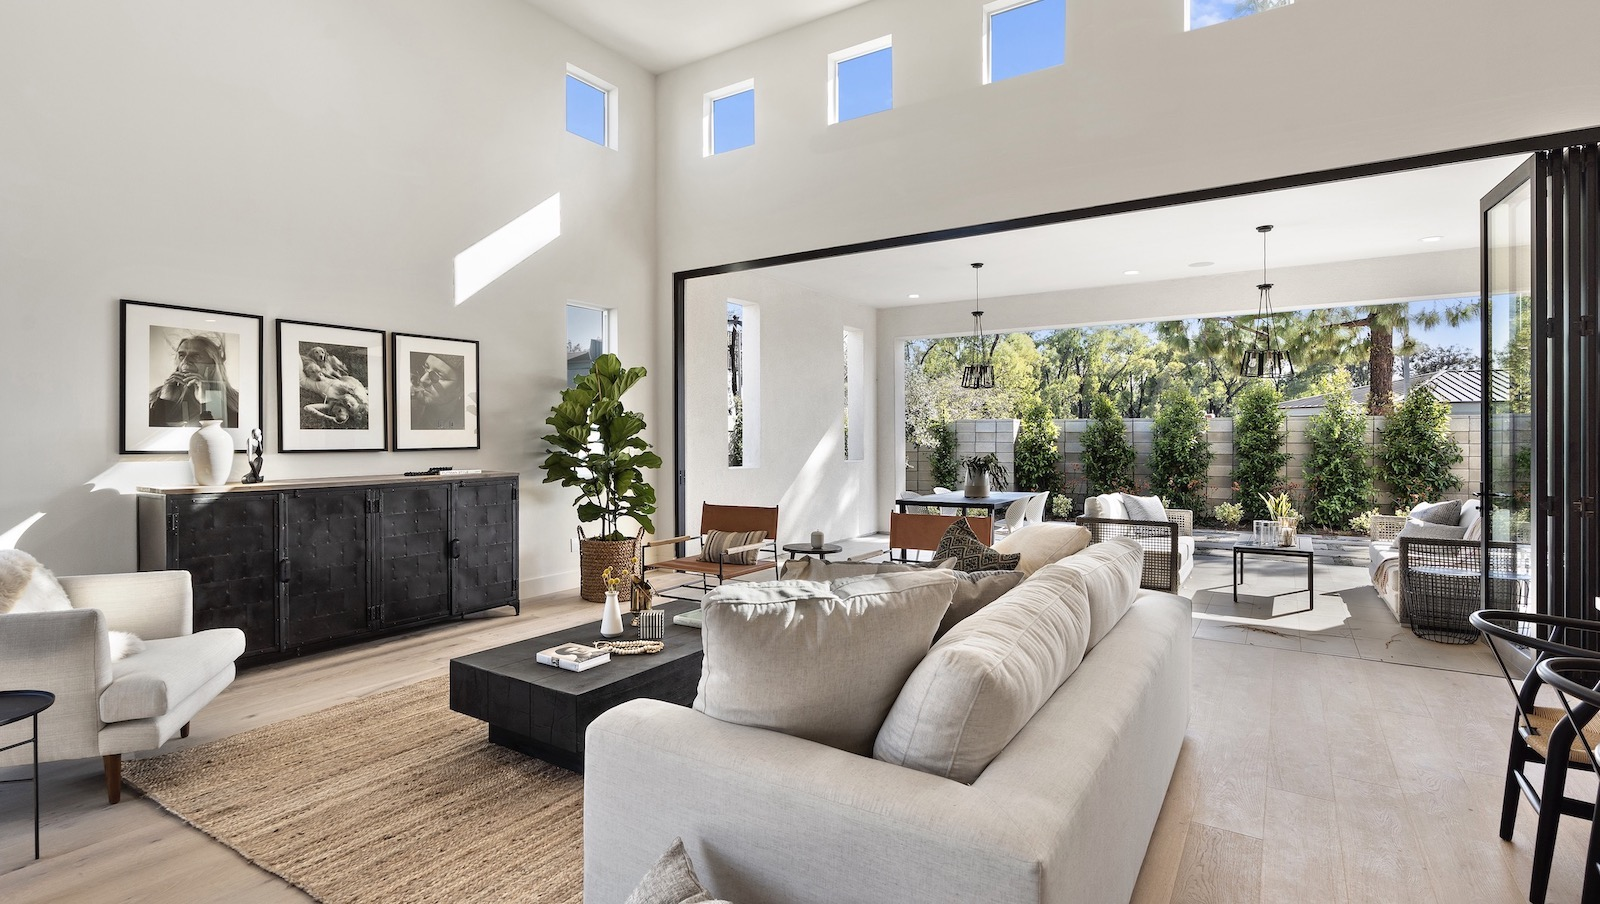 Dahlin Group's Miraval II Plan 2 great room with view to outdoor living